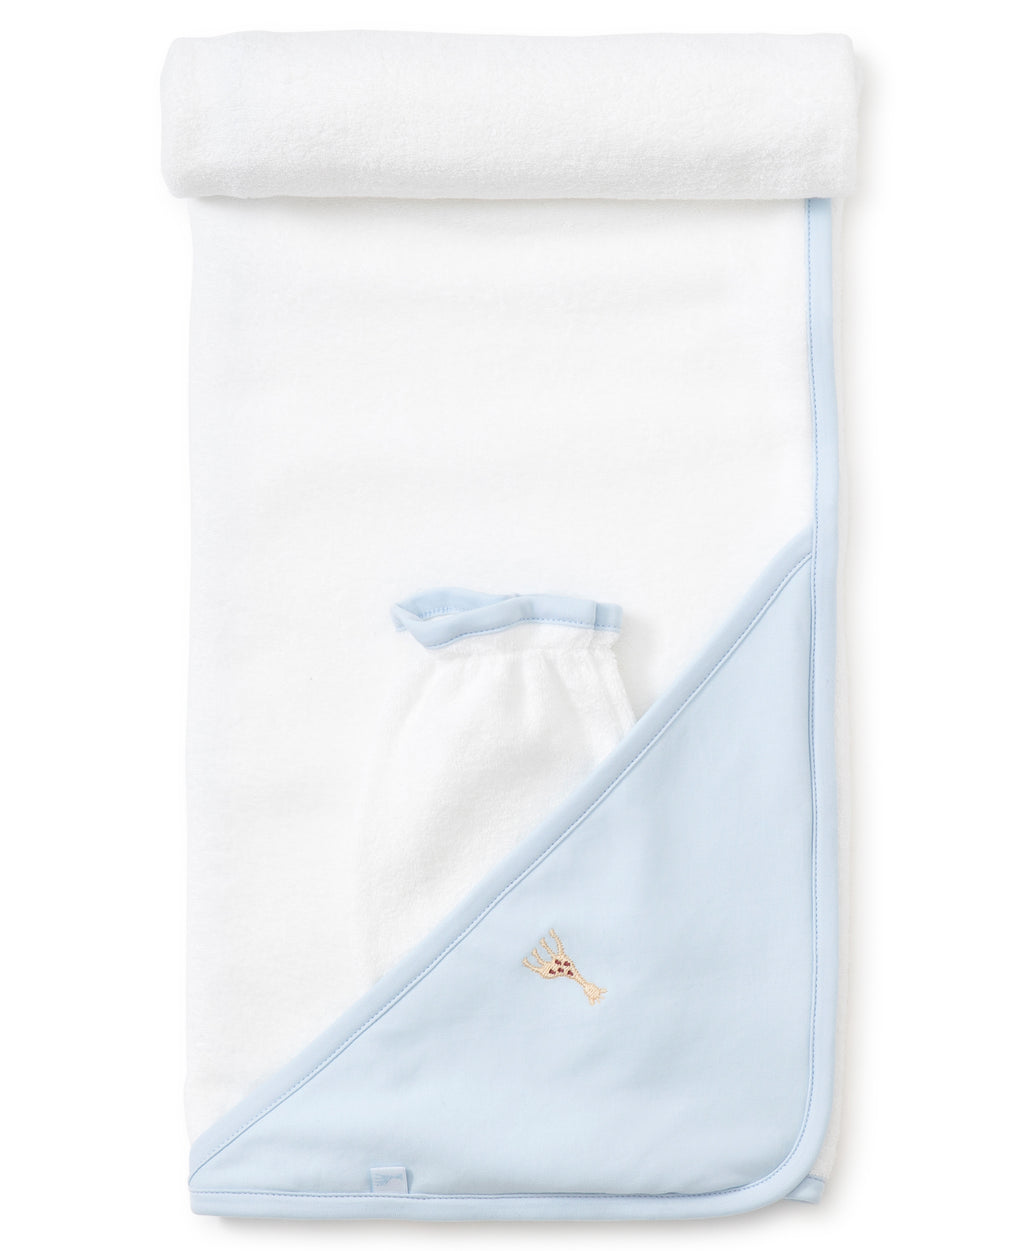 Sophie la girafe Blue Hooded Towel & Mitt Set